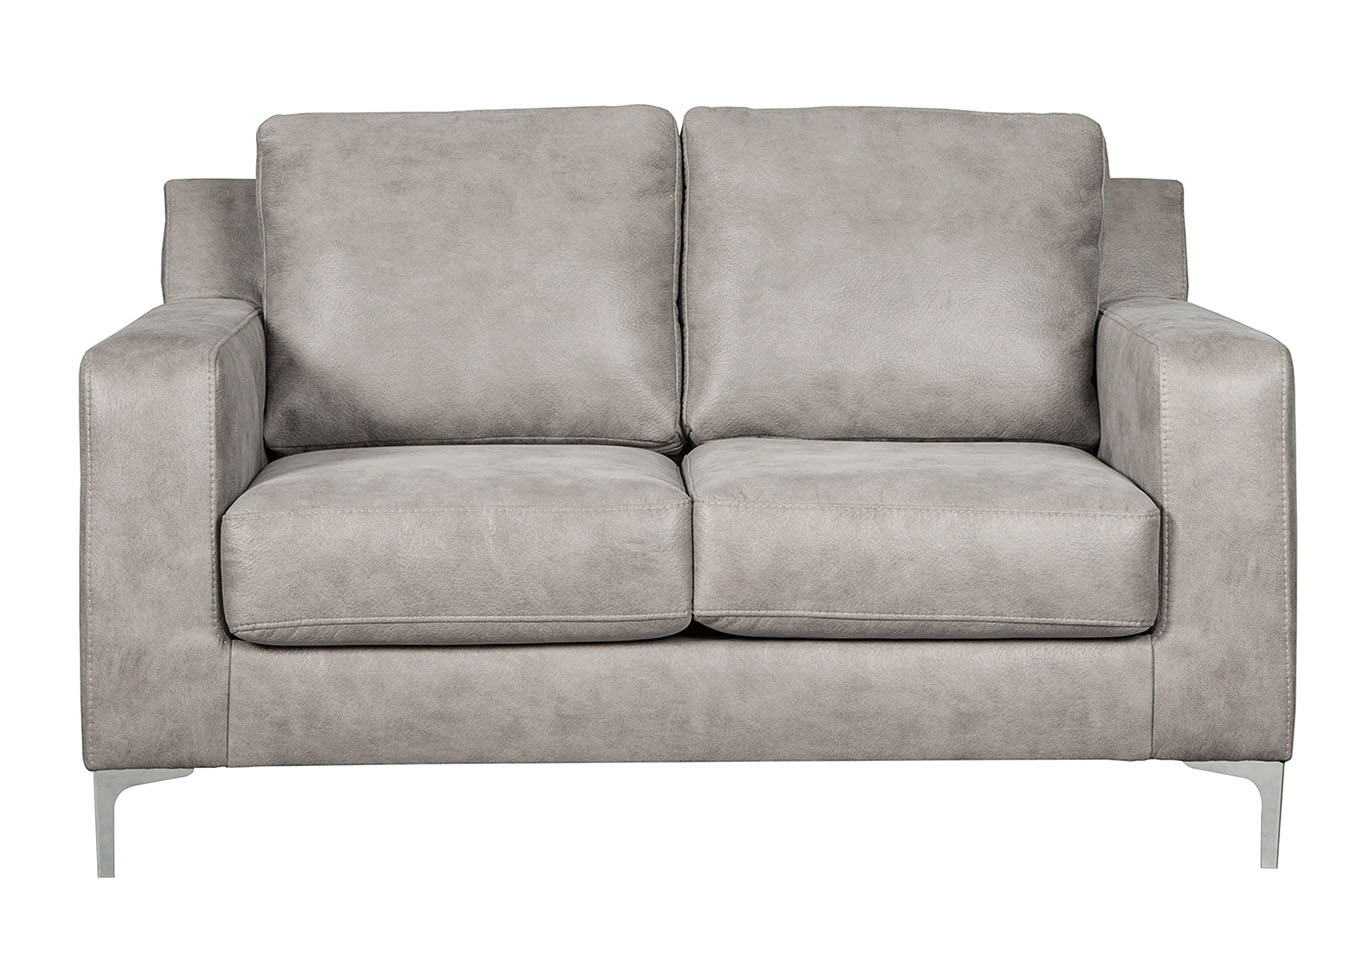 Ryler Steel Loveseat Signature Design By Ashley